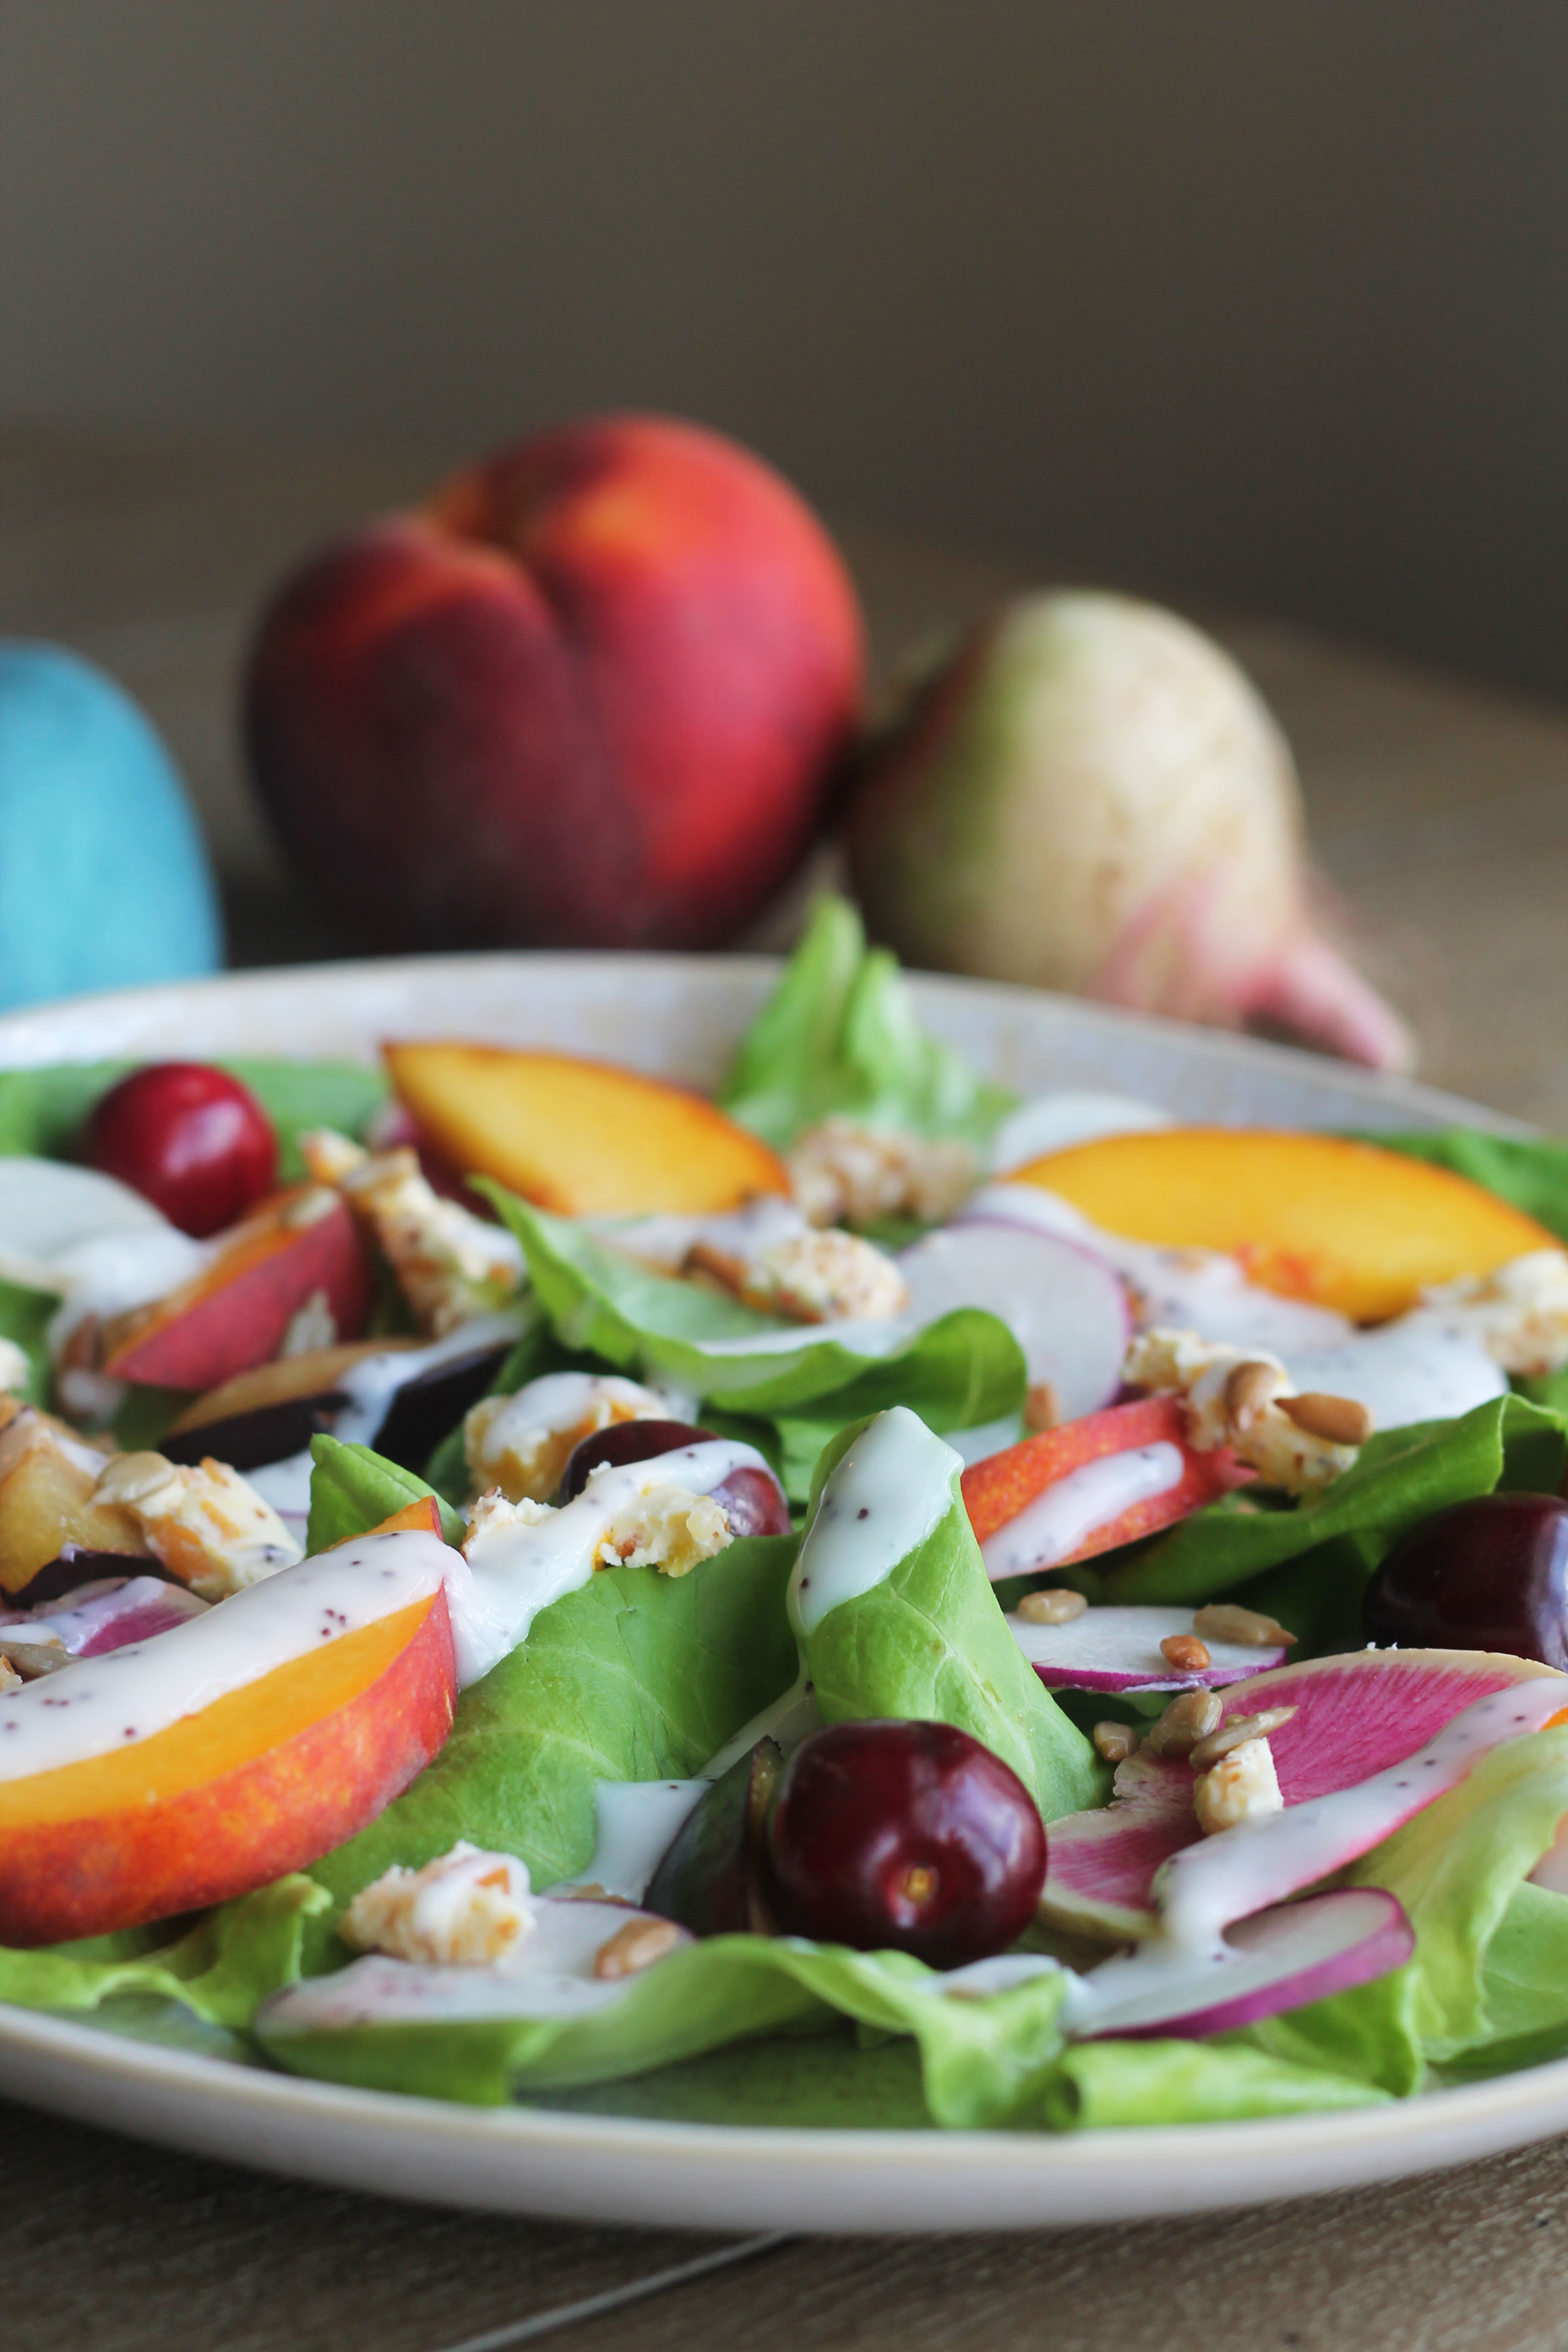 I can't get enough stone fruit and radishes right now so this summer salad is the perfect combo